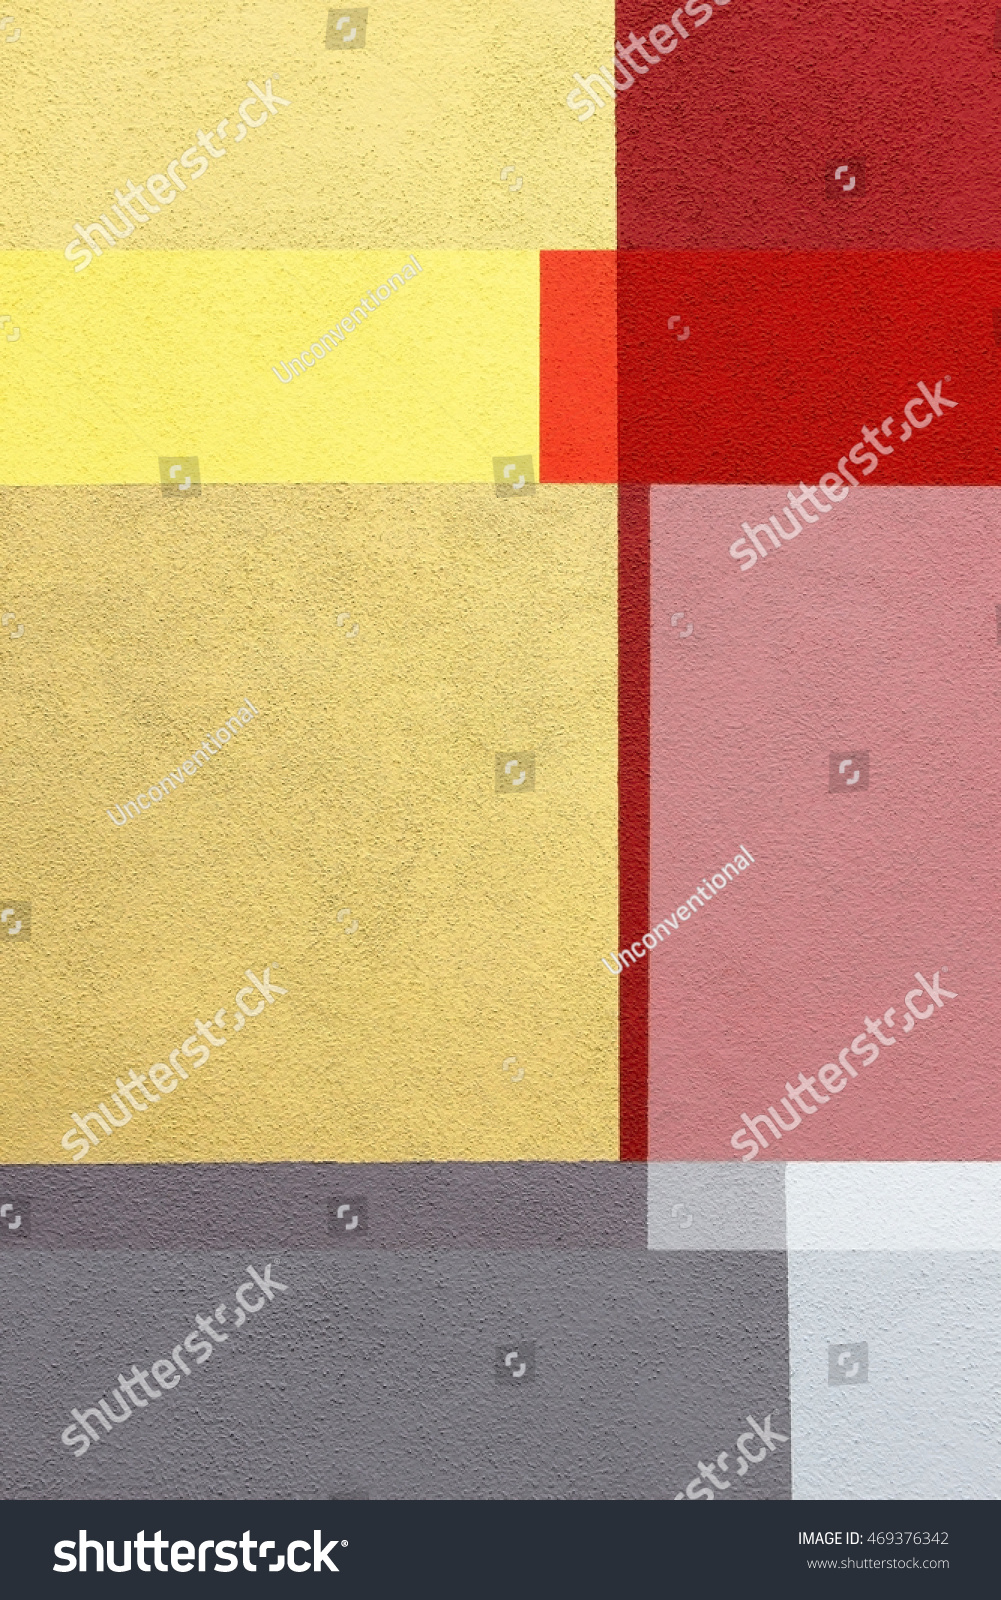 Refined Double Exposure Photo Stucco Wall Stock Photo (Edit